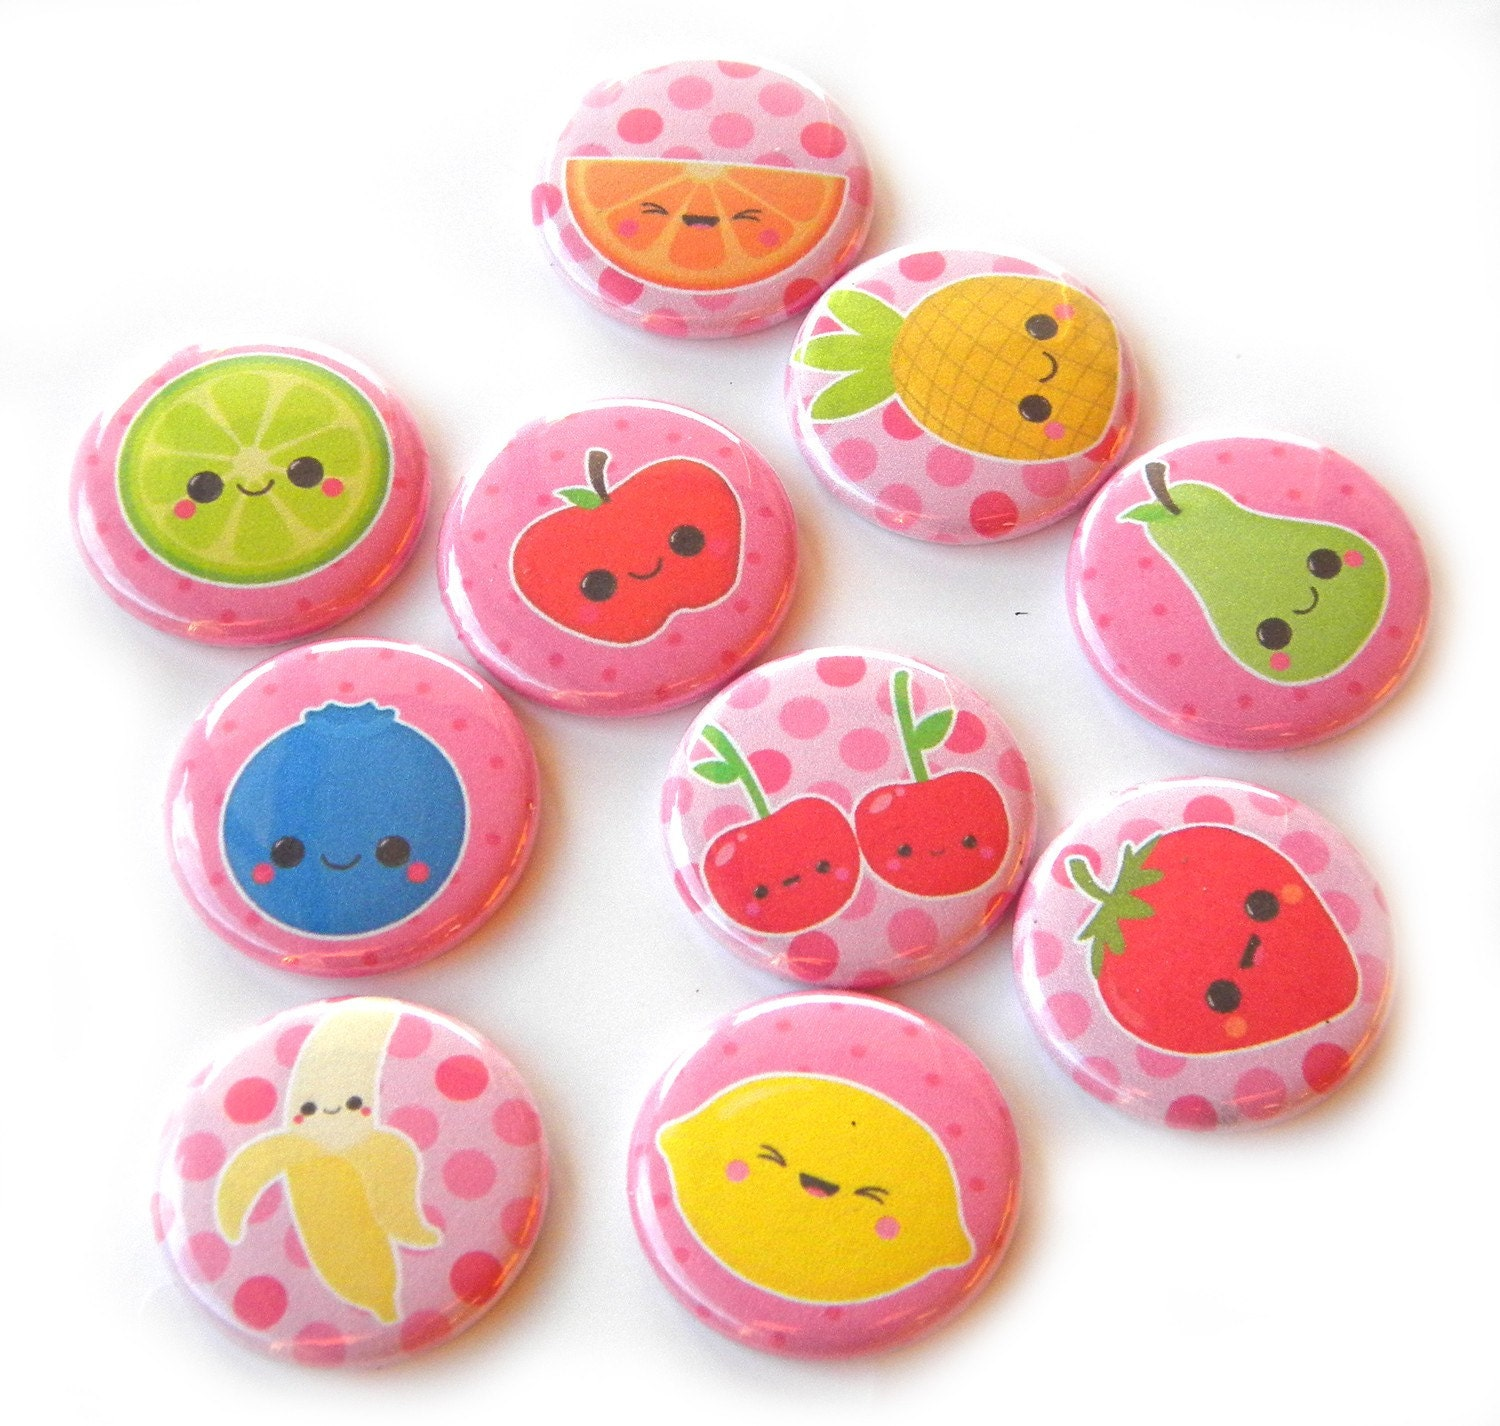 10 Kawaii Fruit Flat Back Buttons